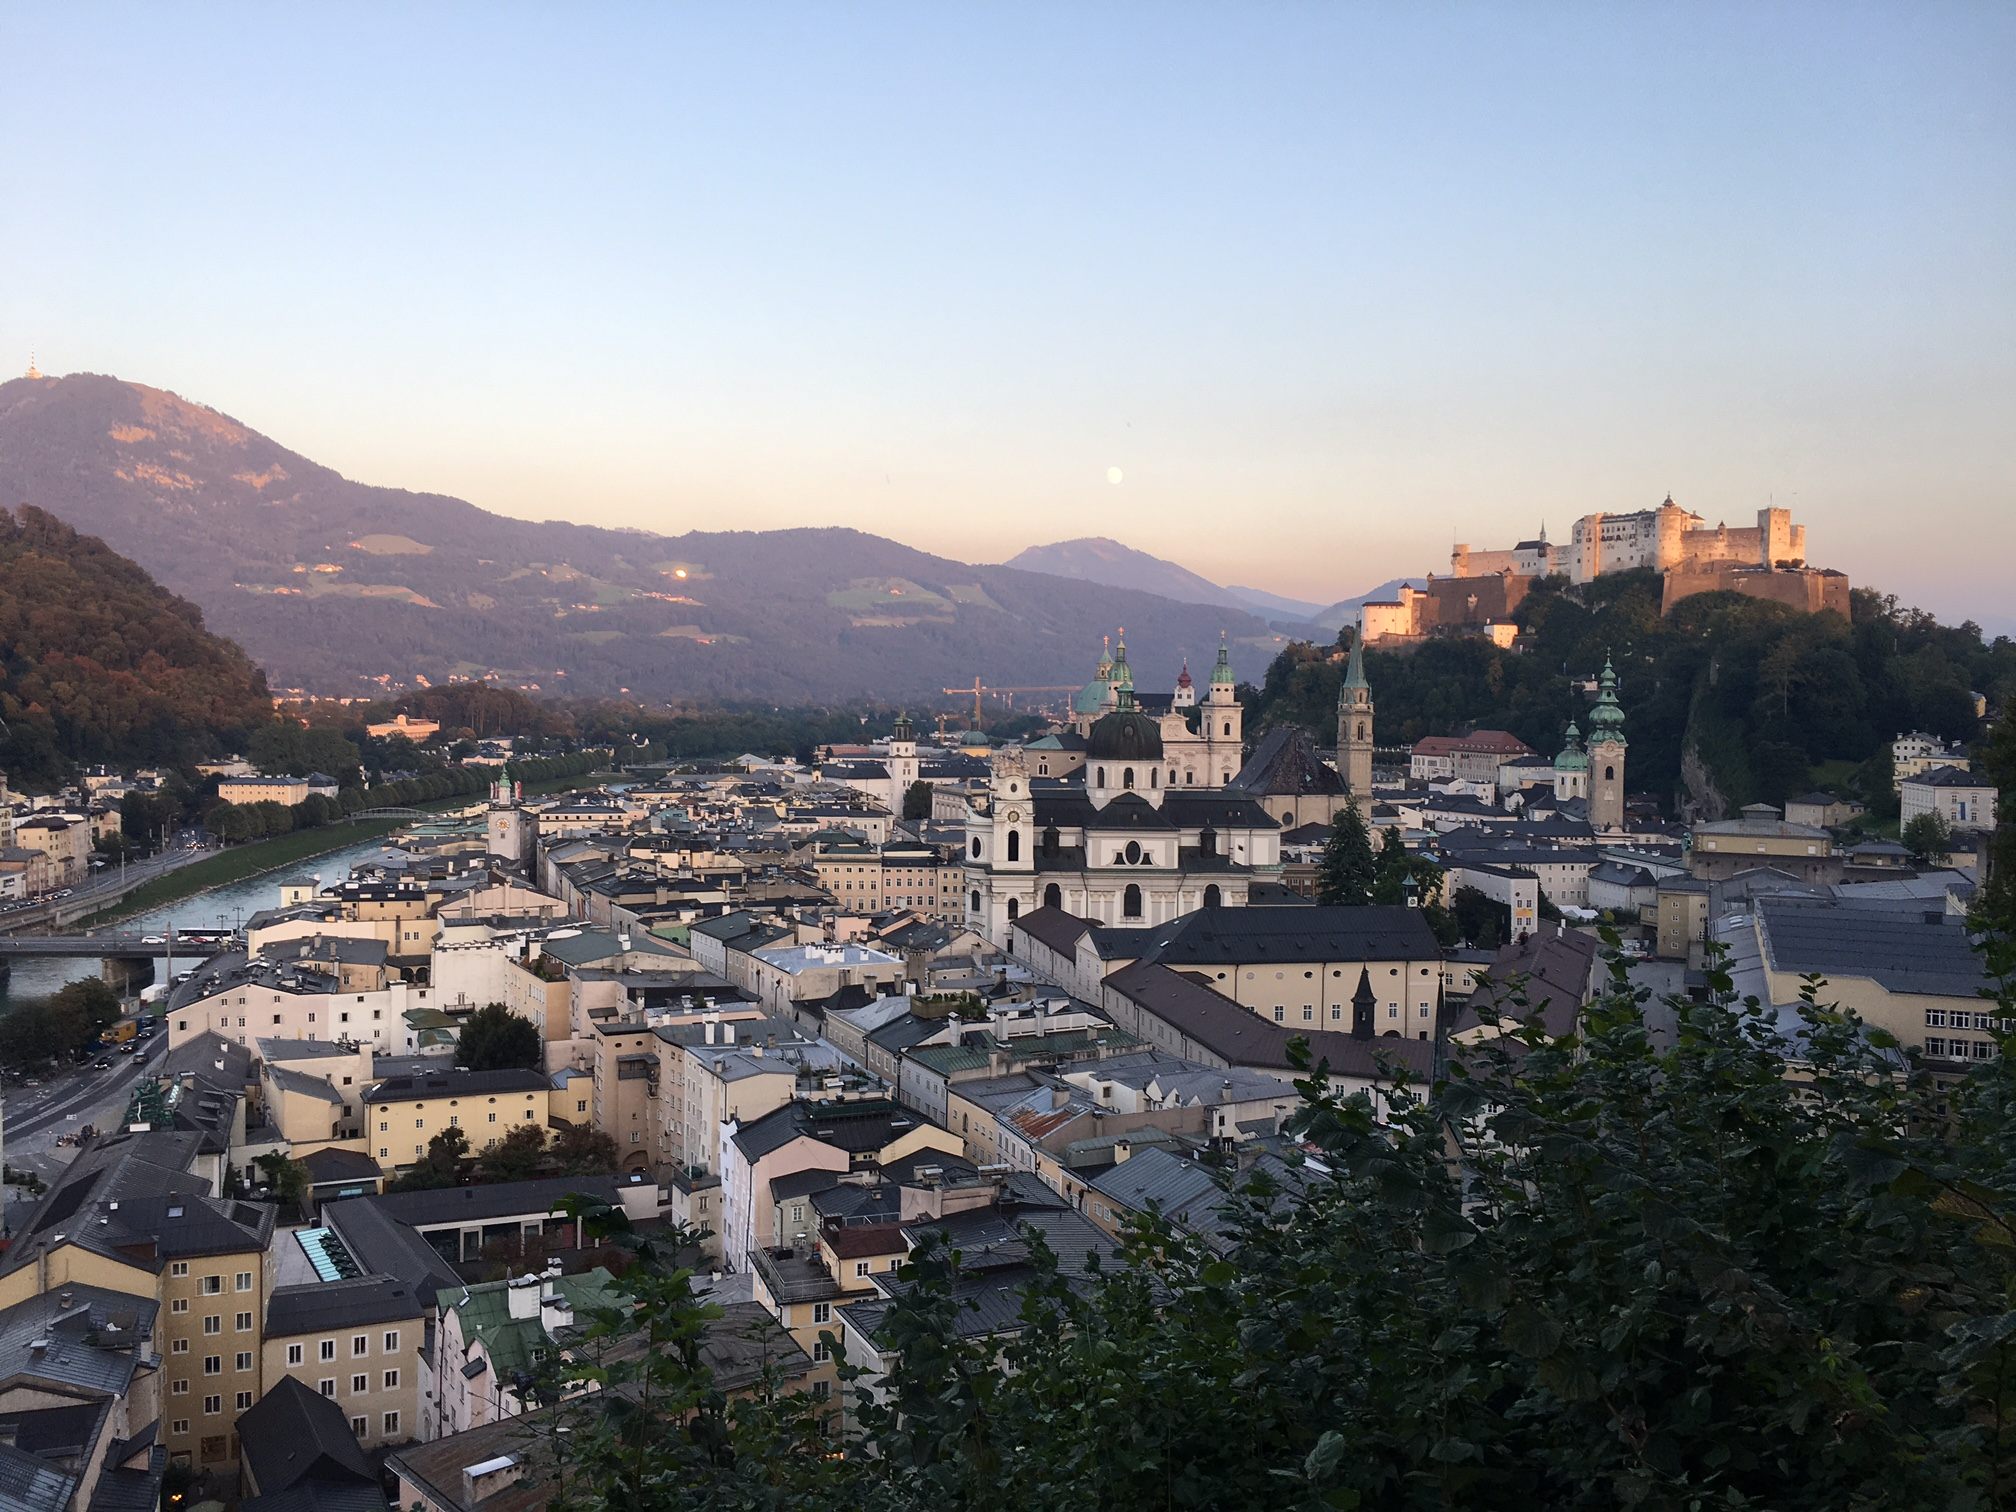 Sunset in Salzburg